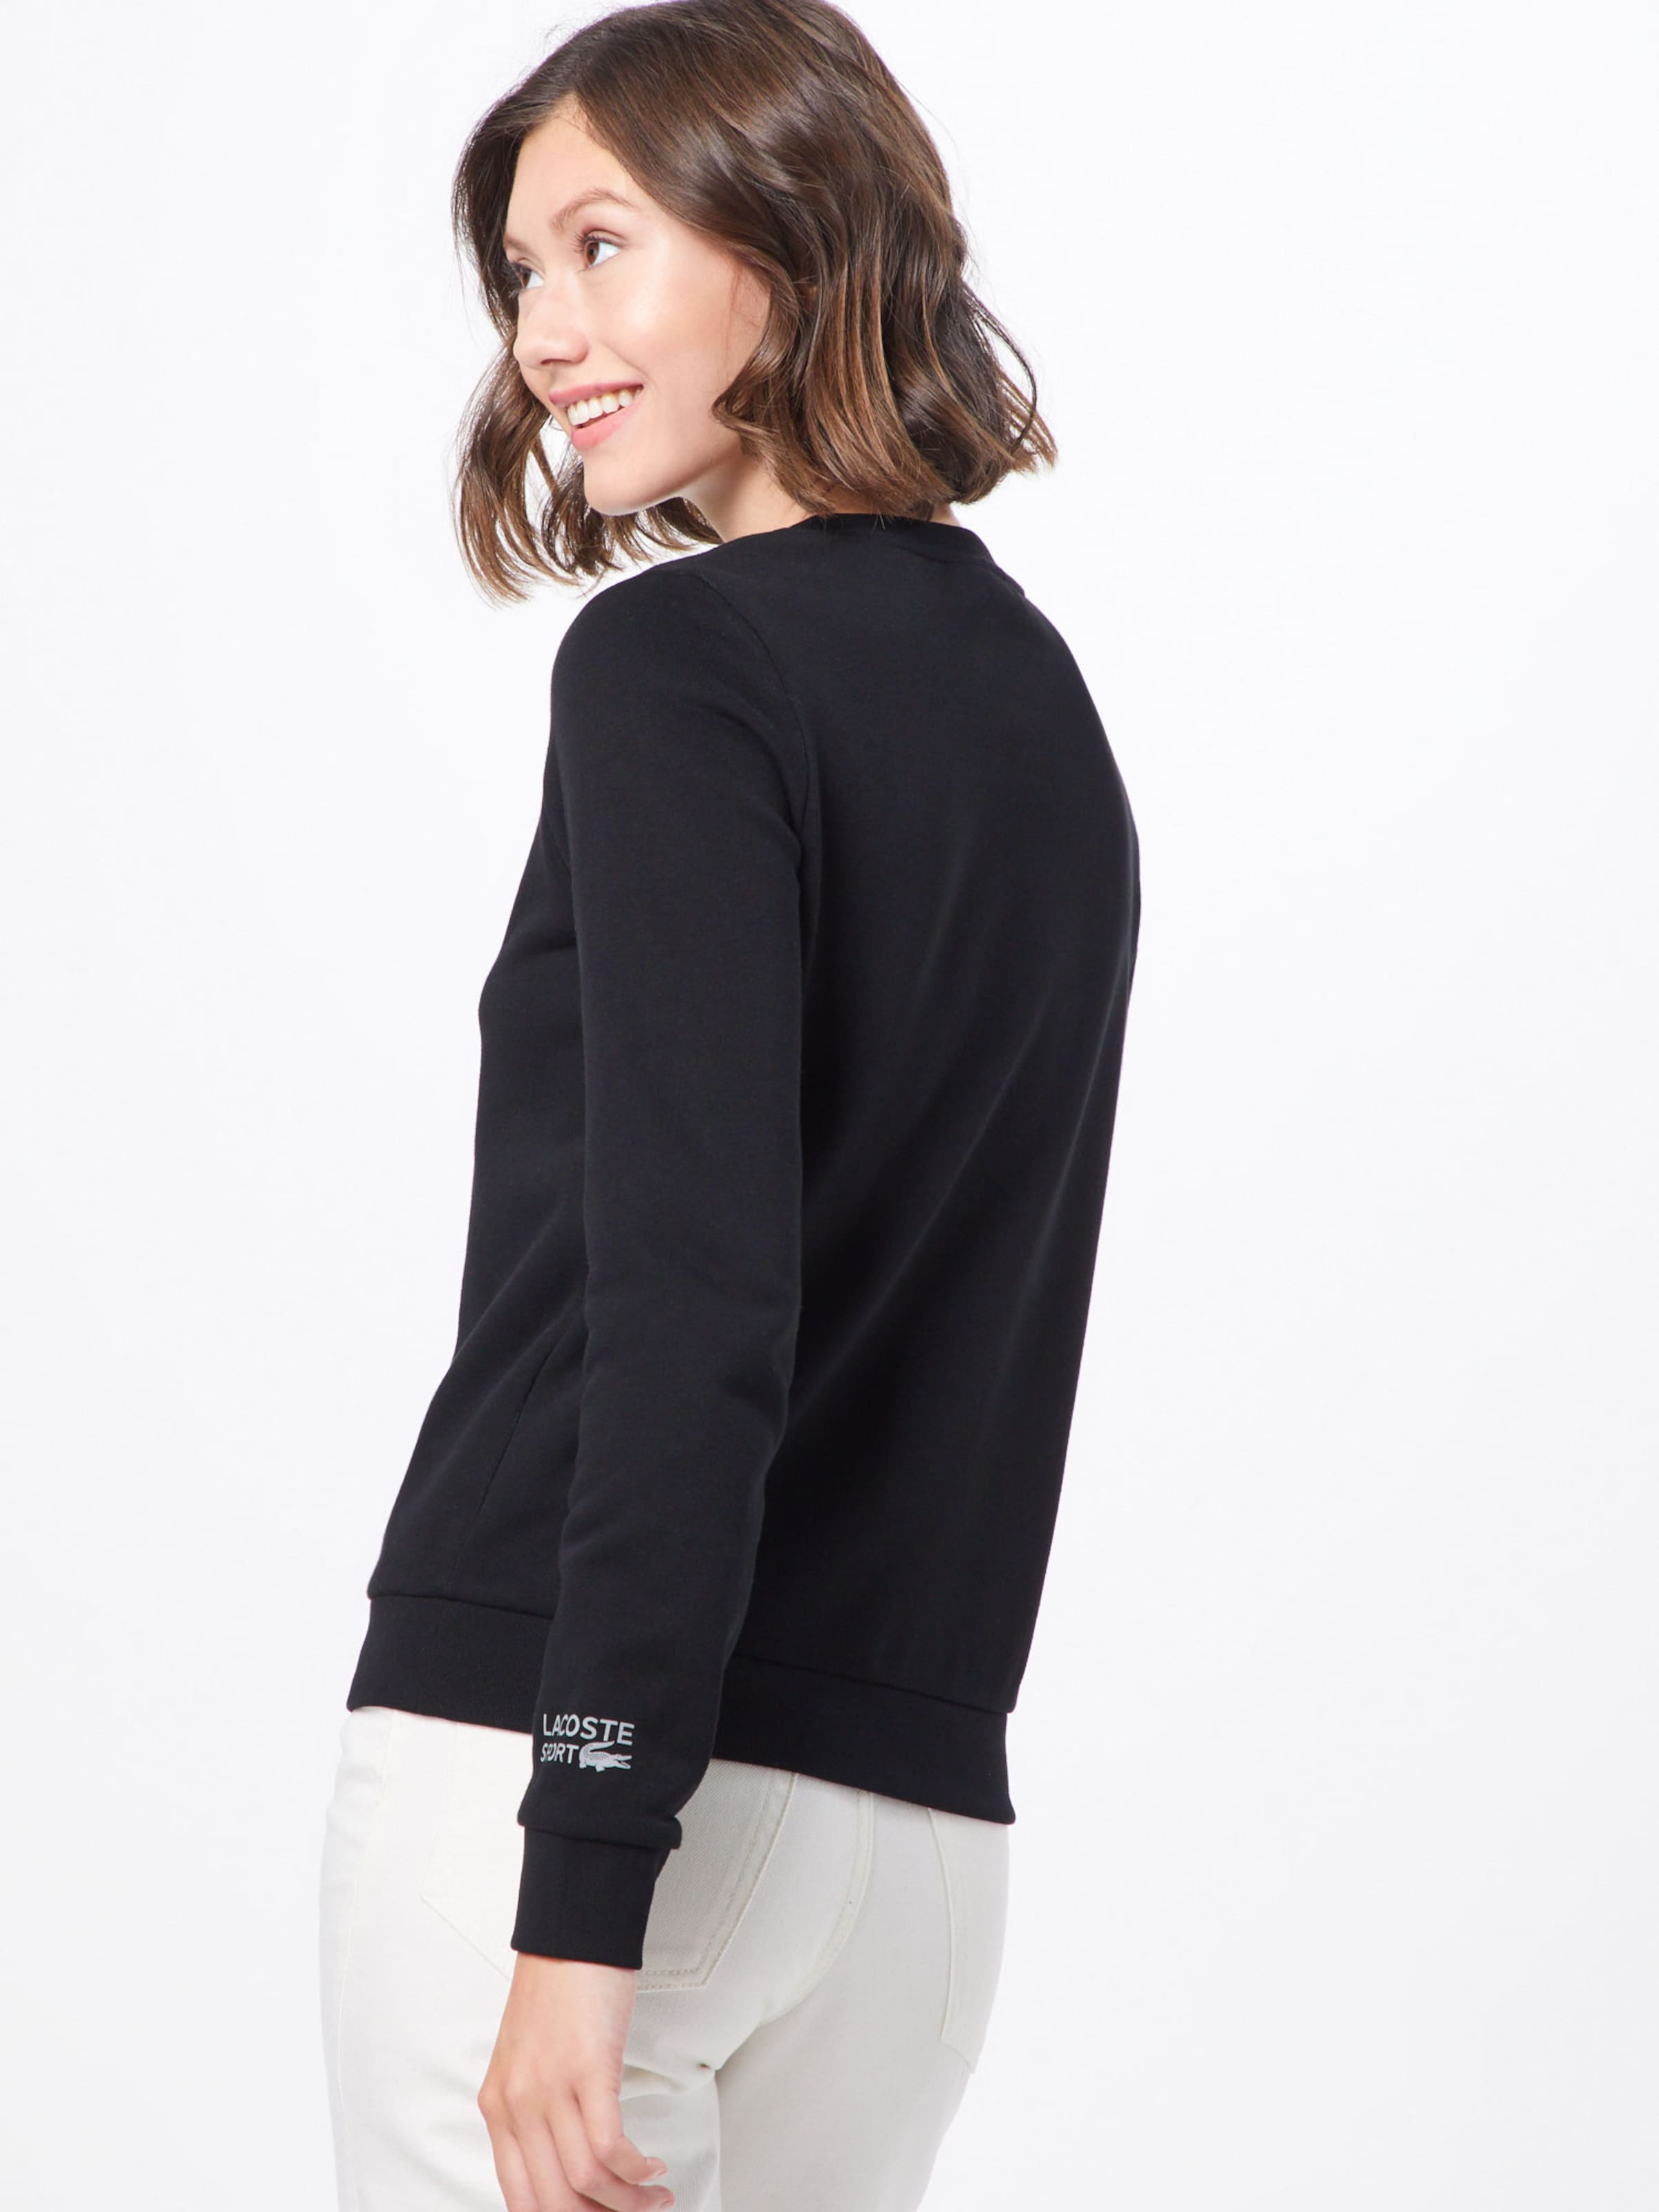 shirt Lacoste Sweat shirt Noir En Lacoste Sweat bf7IYyv6g